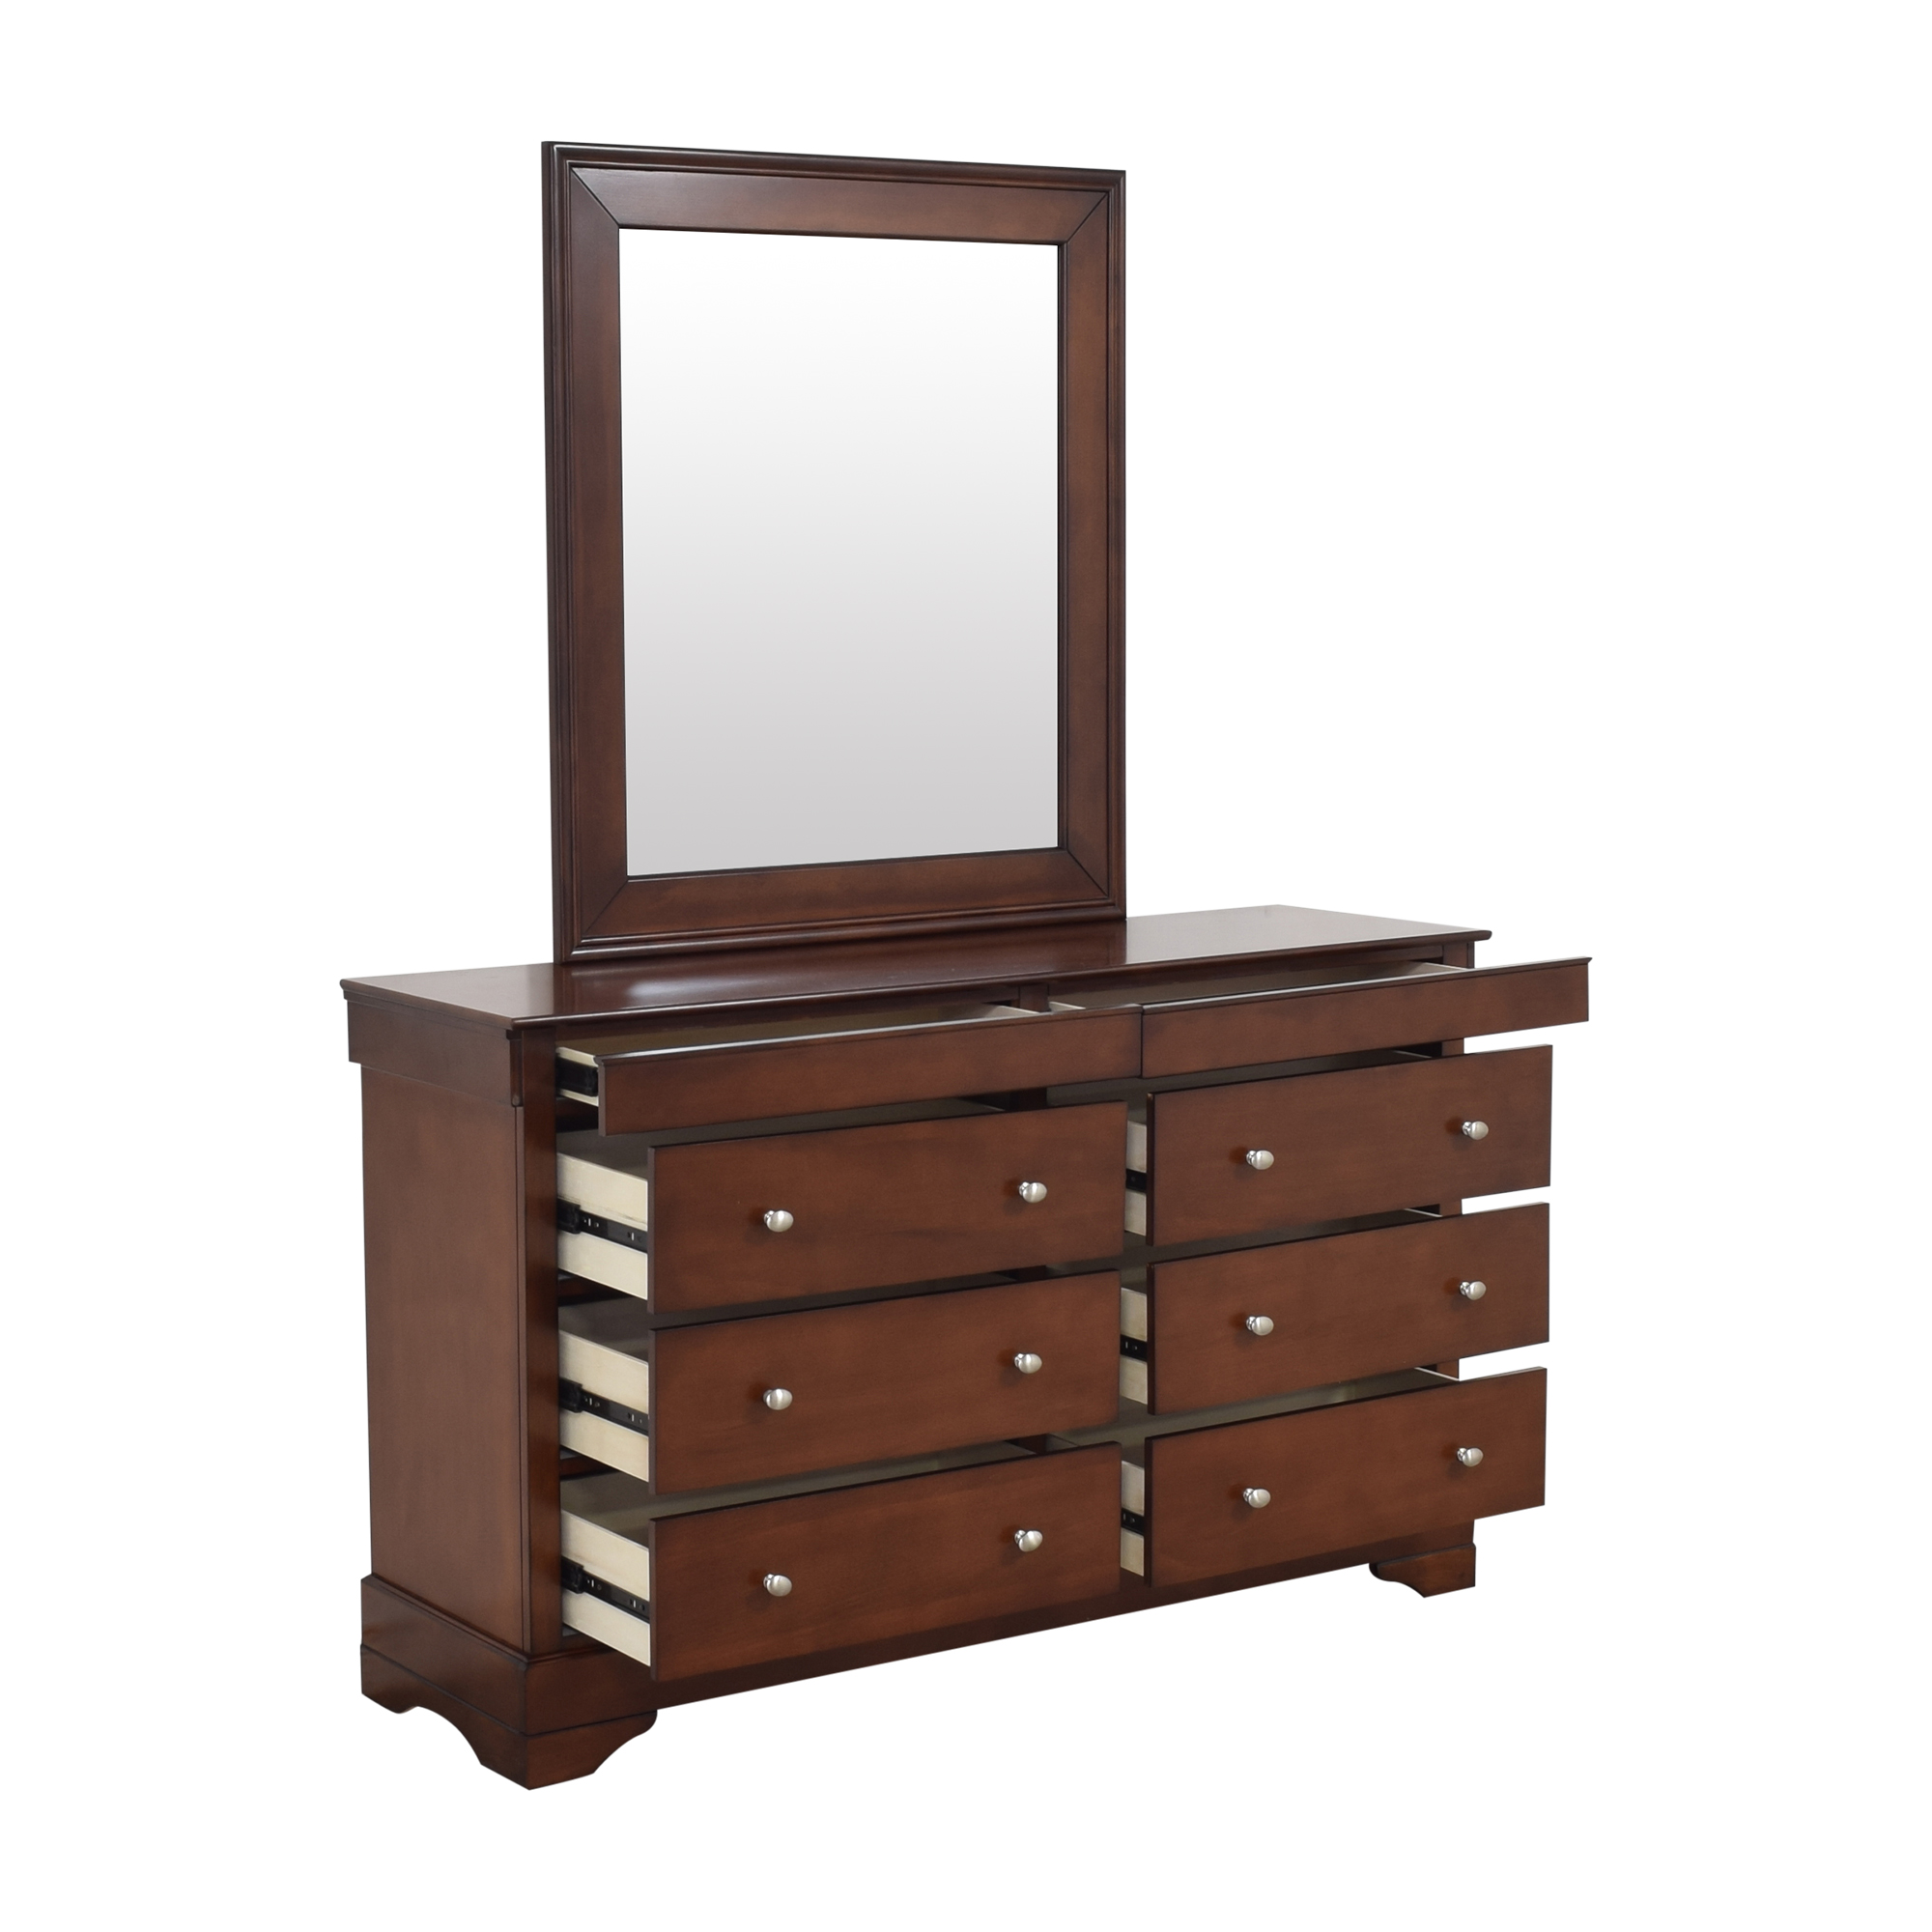 buy Lifestyle Solutions Double Dresser with Mirror Lifestyle Solutions Storage